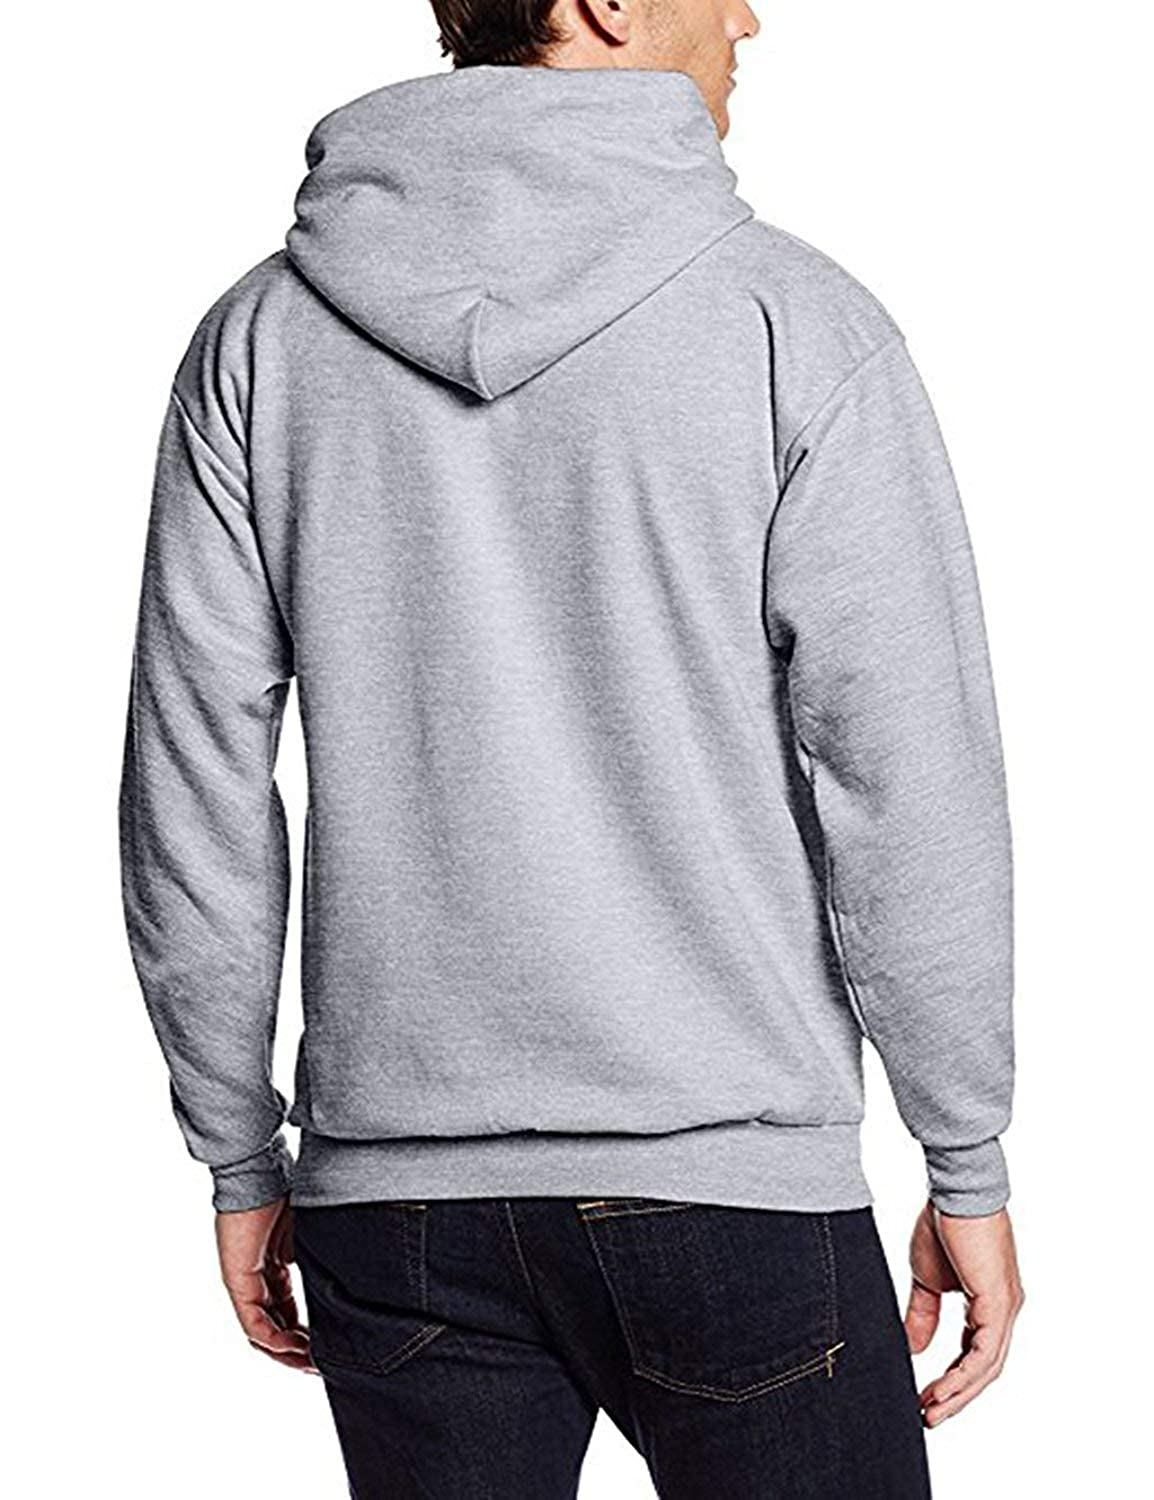 Mens Sweatshir Musik Vibe F Custom Mens Hoodies